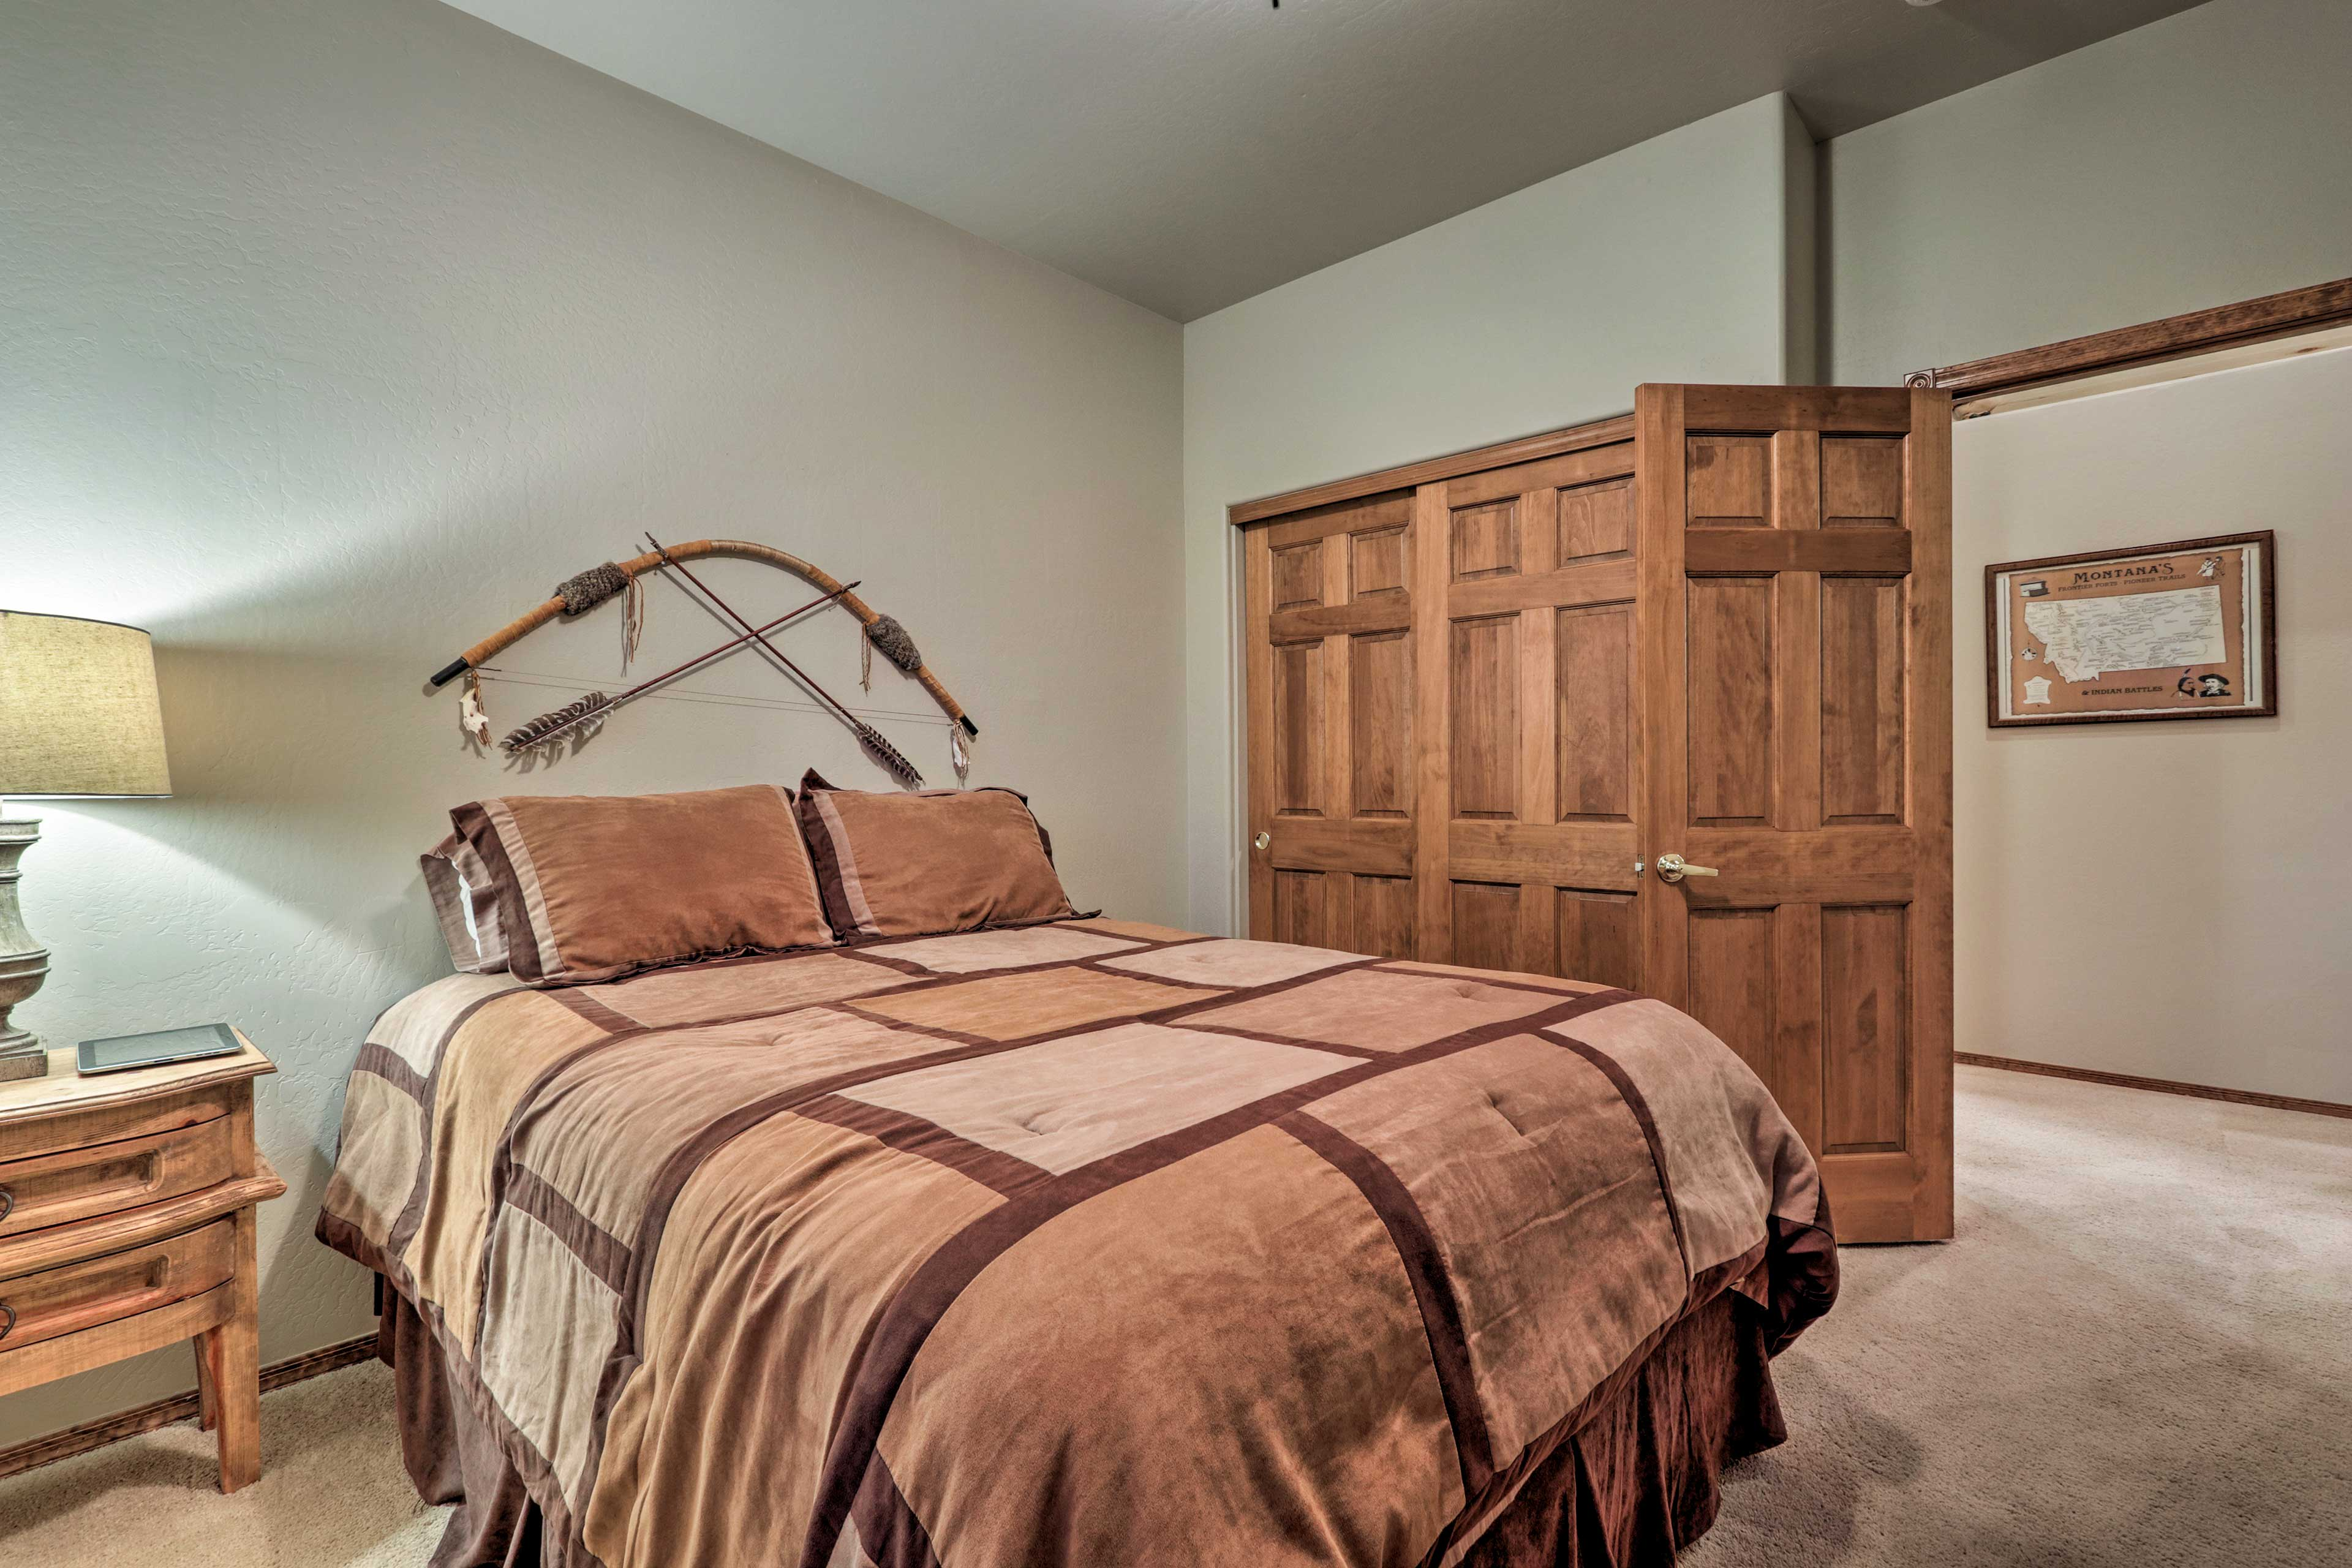 Both bedrooms offer a peaceful retreat.